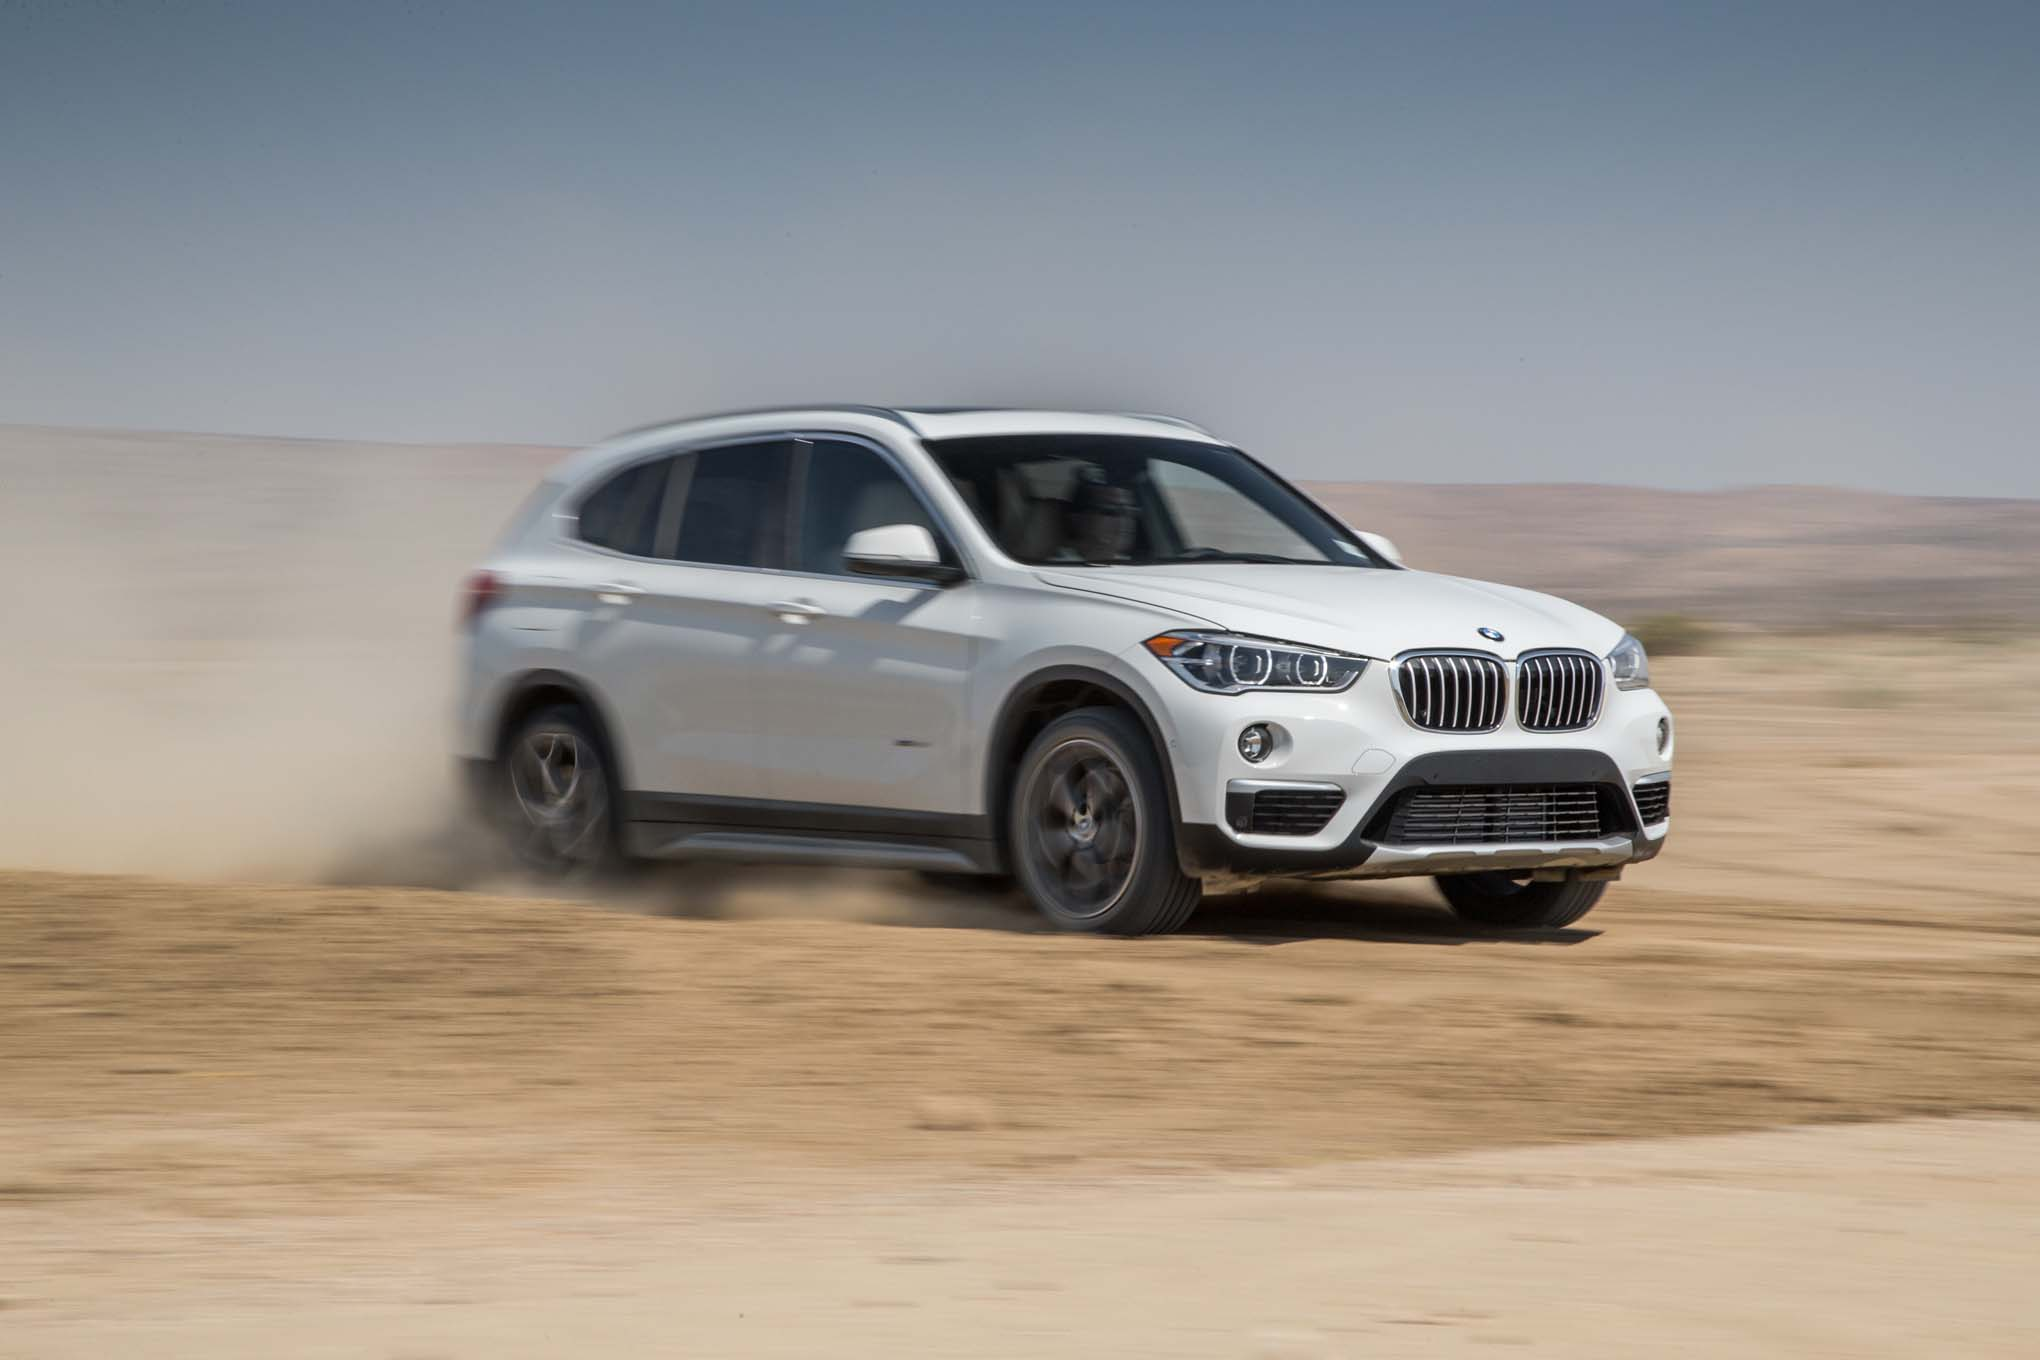 2017 BMW X1 xDrive28i Pictures Gallery (23 Images)